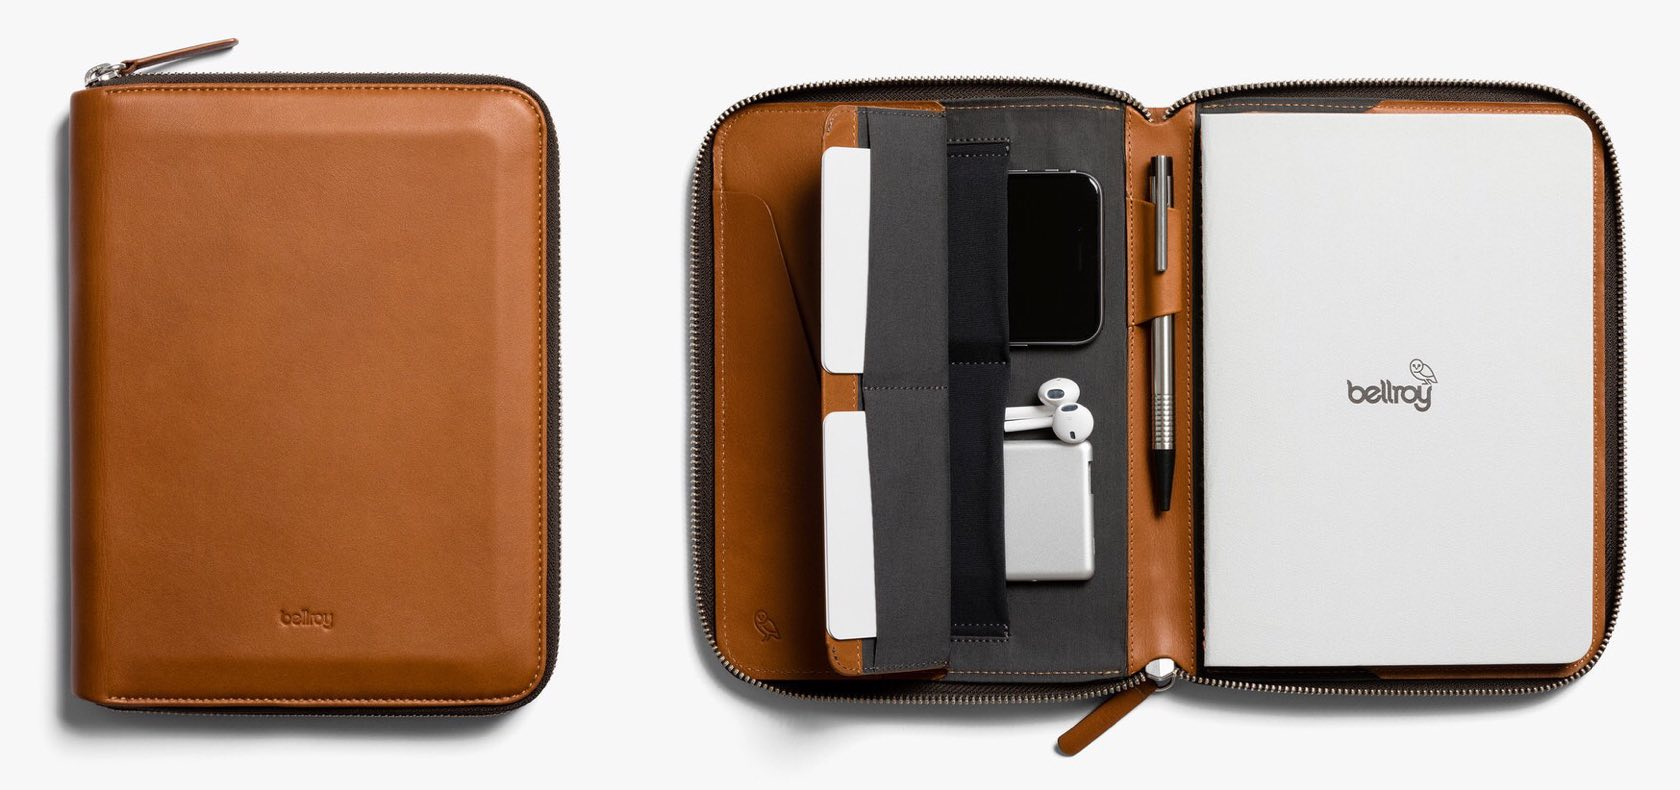 bellroy-work-folio-a5